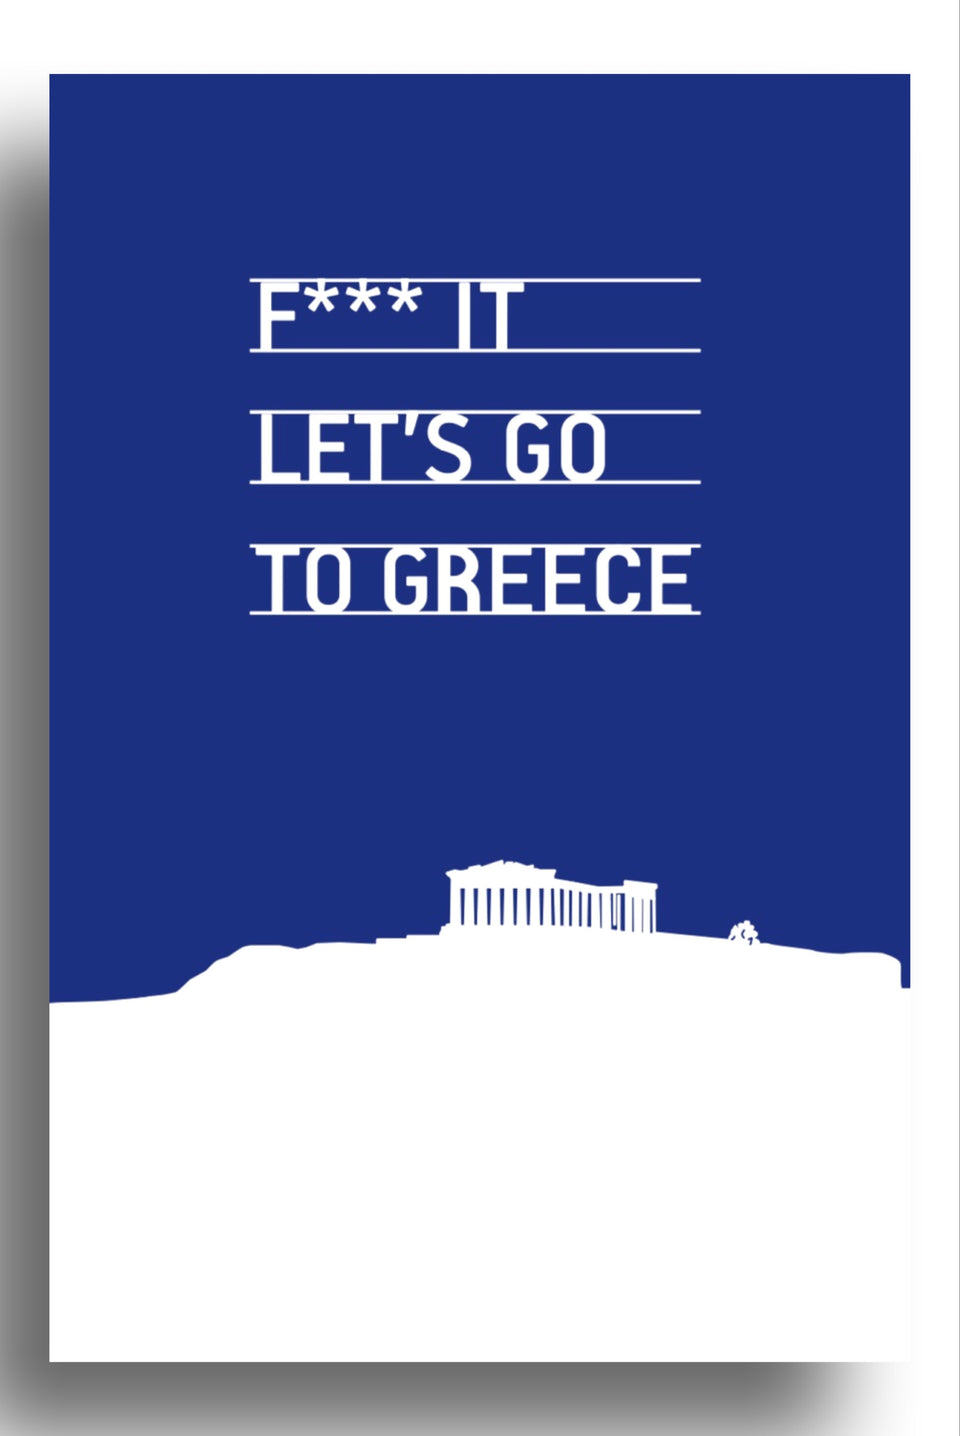 F**k let's go to Greece | art print